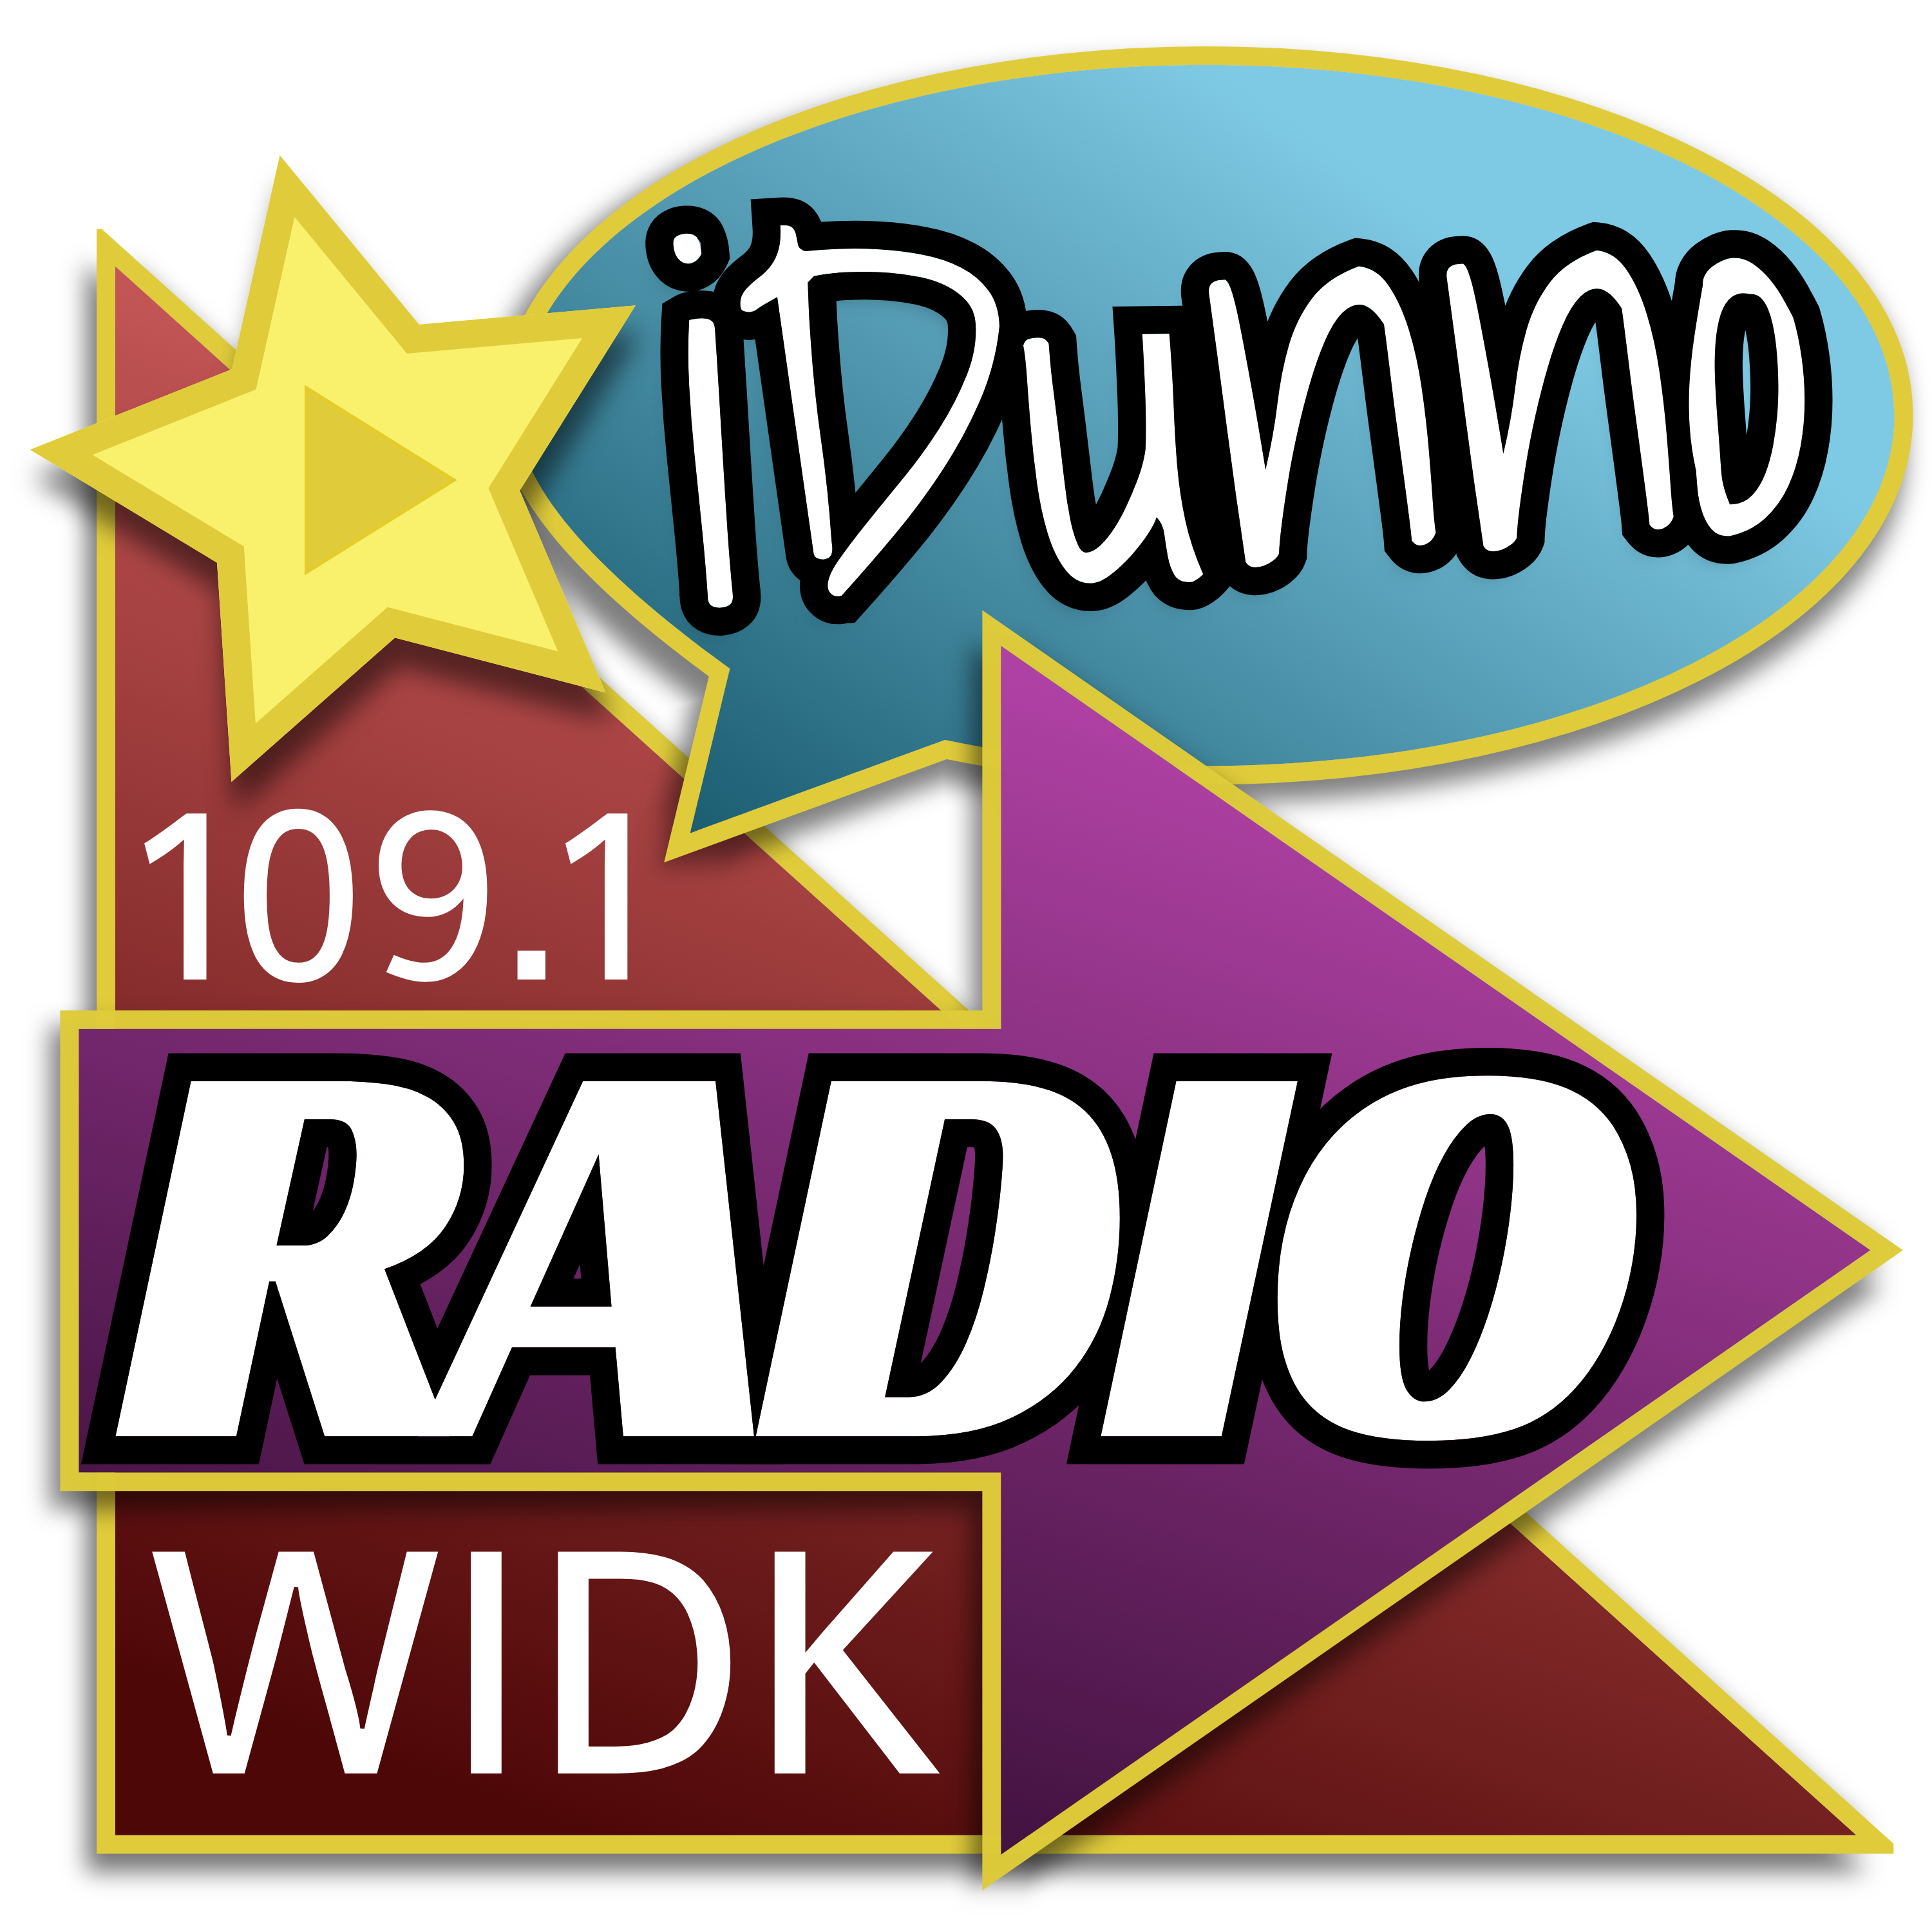 Widk 37 Hand Foot Mouse Disease Idunnoradio 1091 Widk Podcast